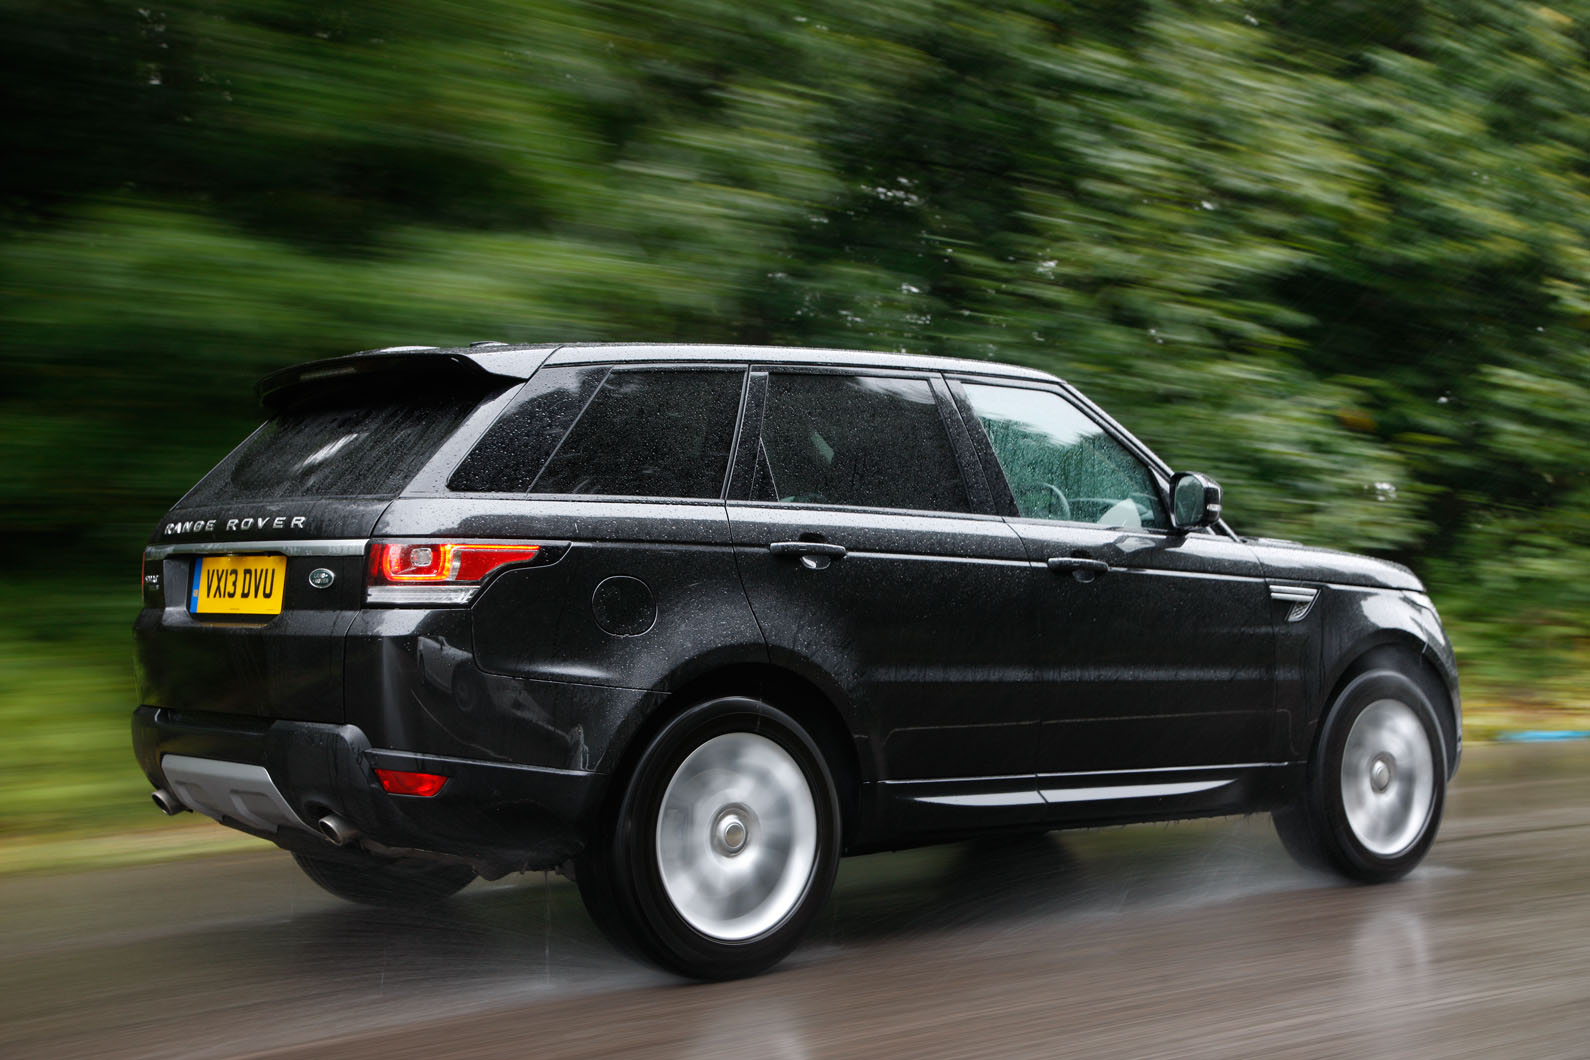 Best Range Rover Best Cars Of 2013 Range Rover Sport Autocar